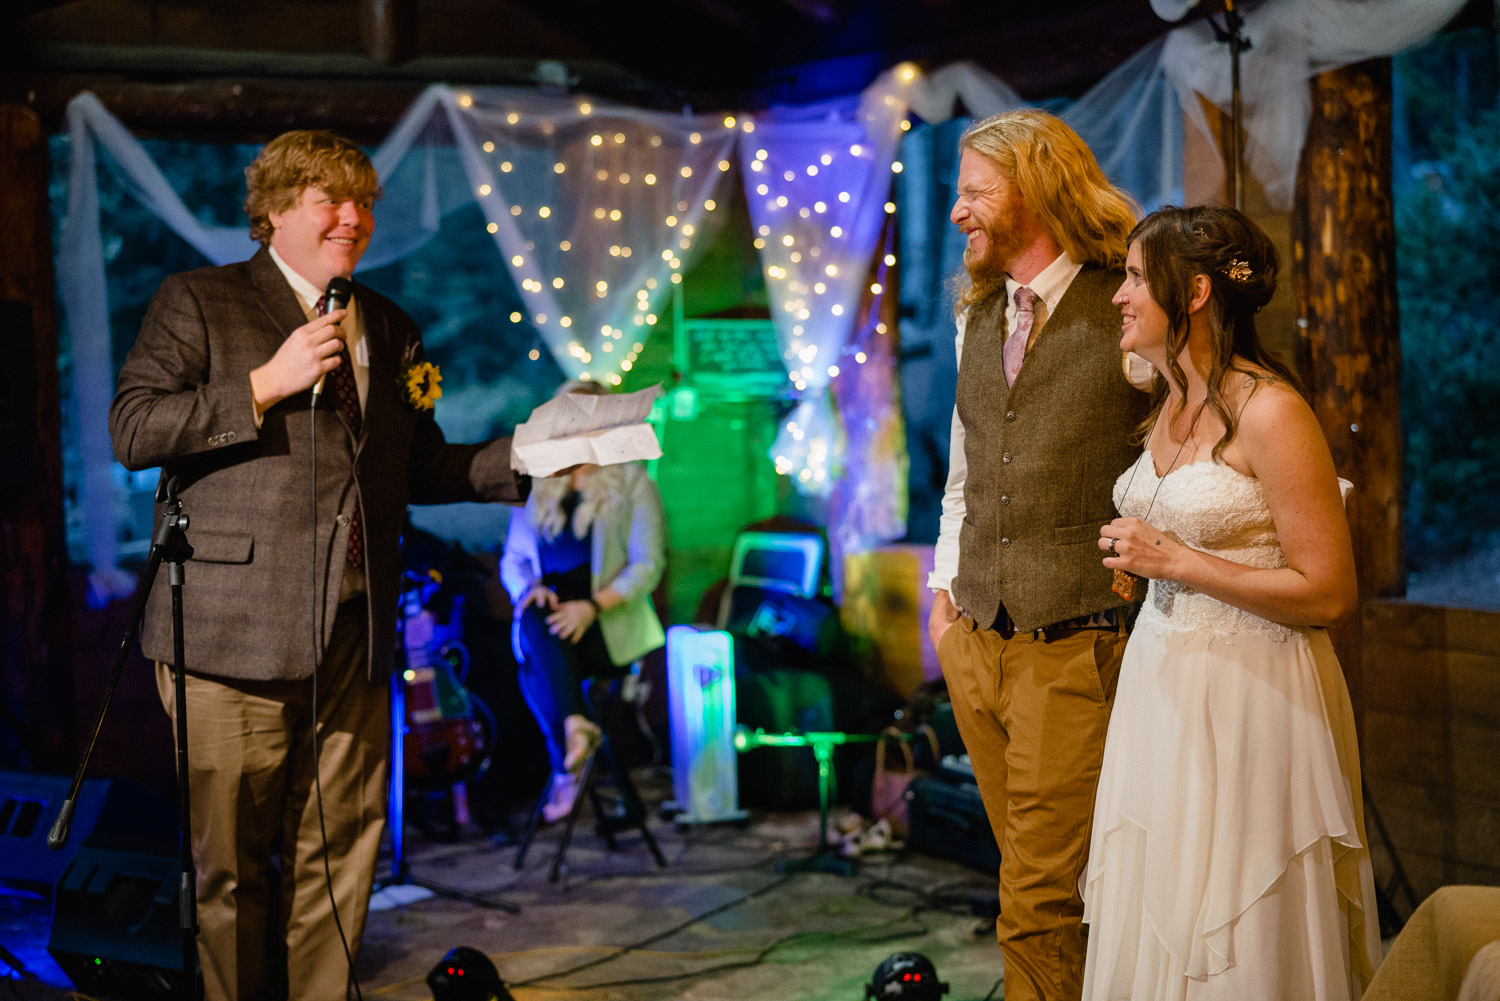 best man giving toast to bride and groom at night campground wedding